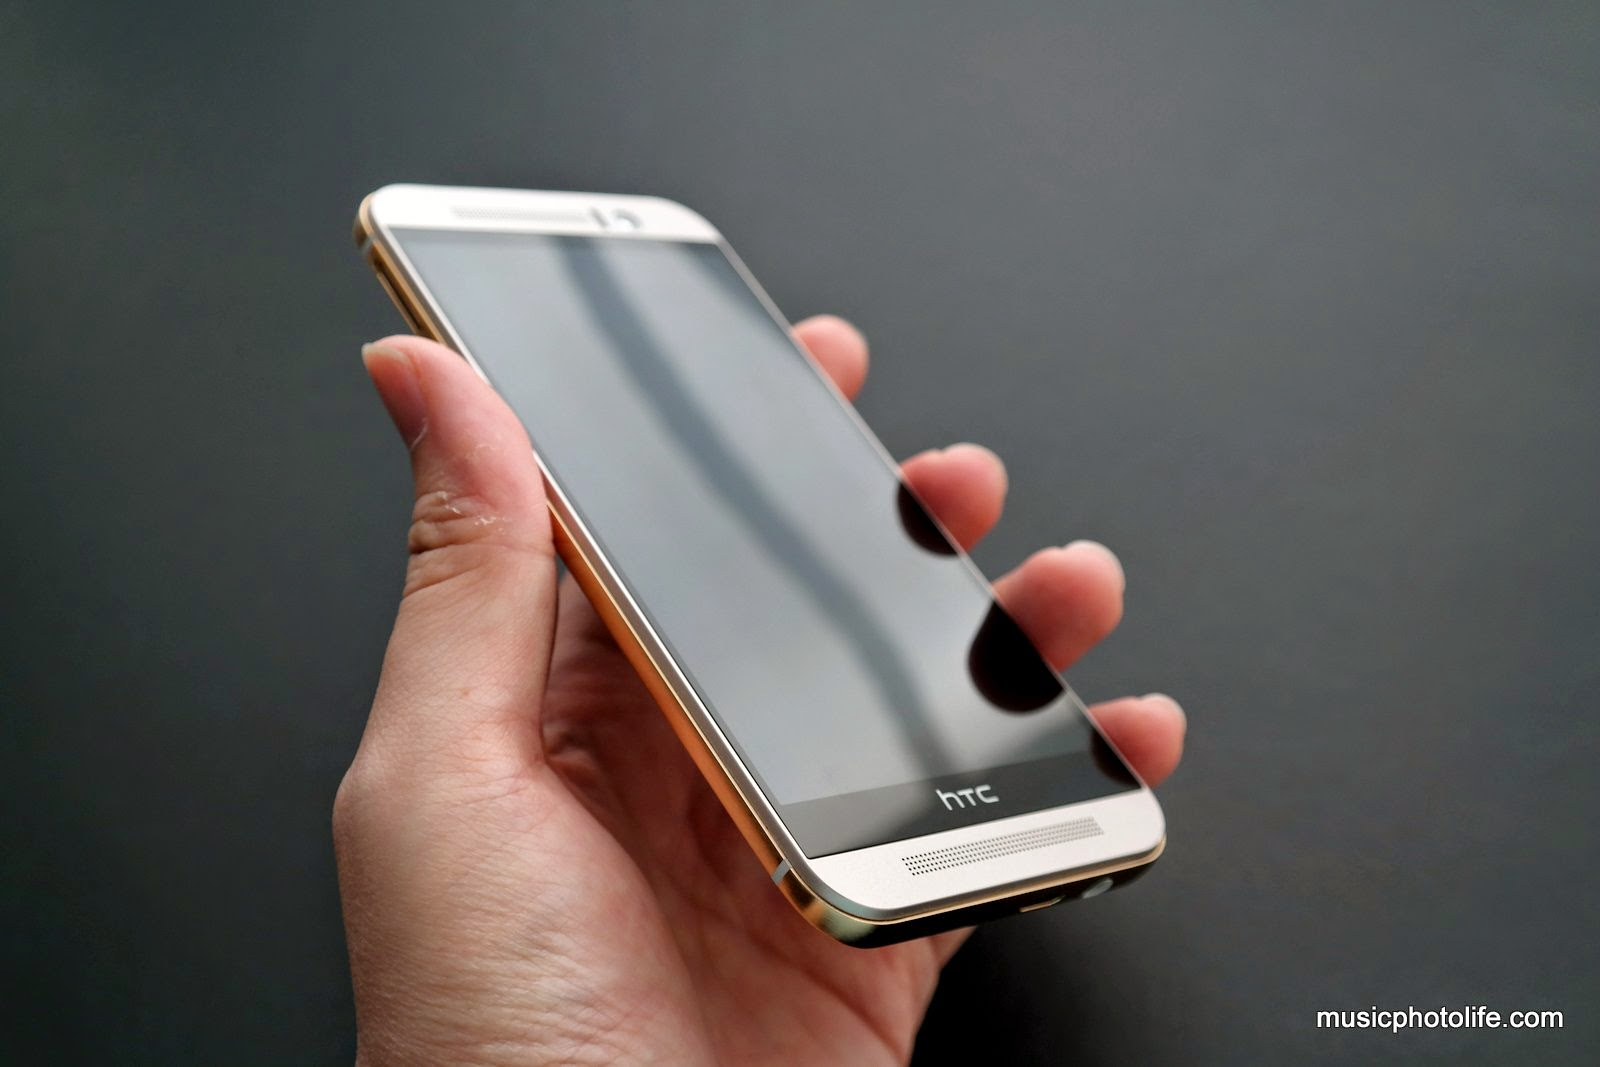 HTC One M9 Review - StarHub Community - 119037